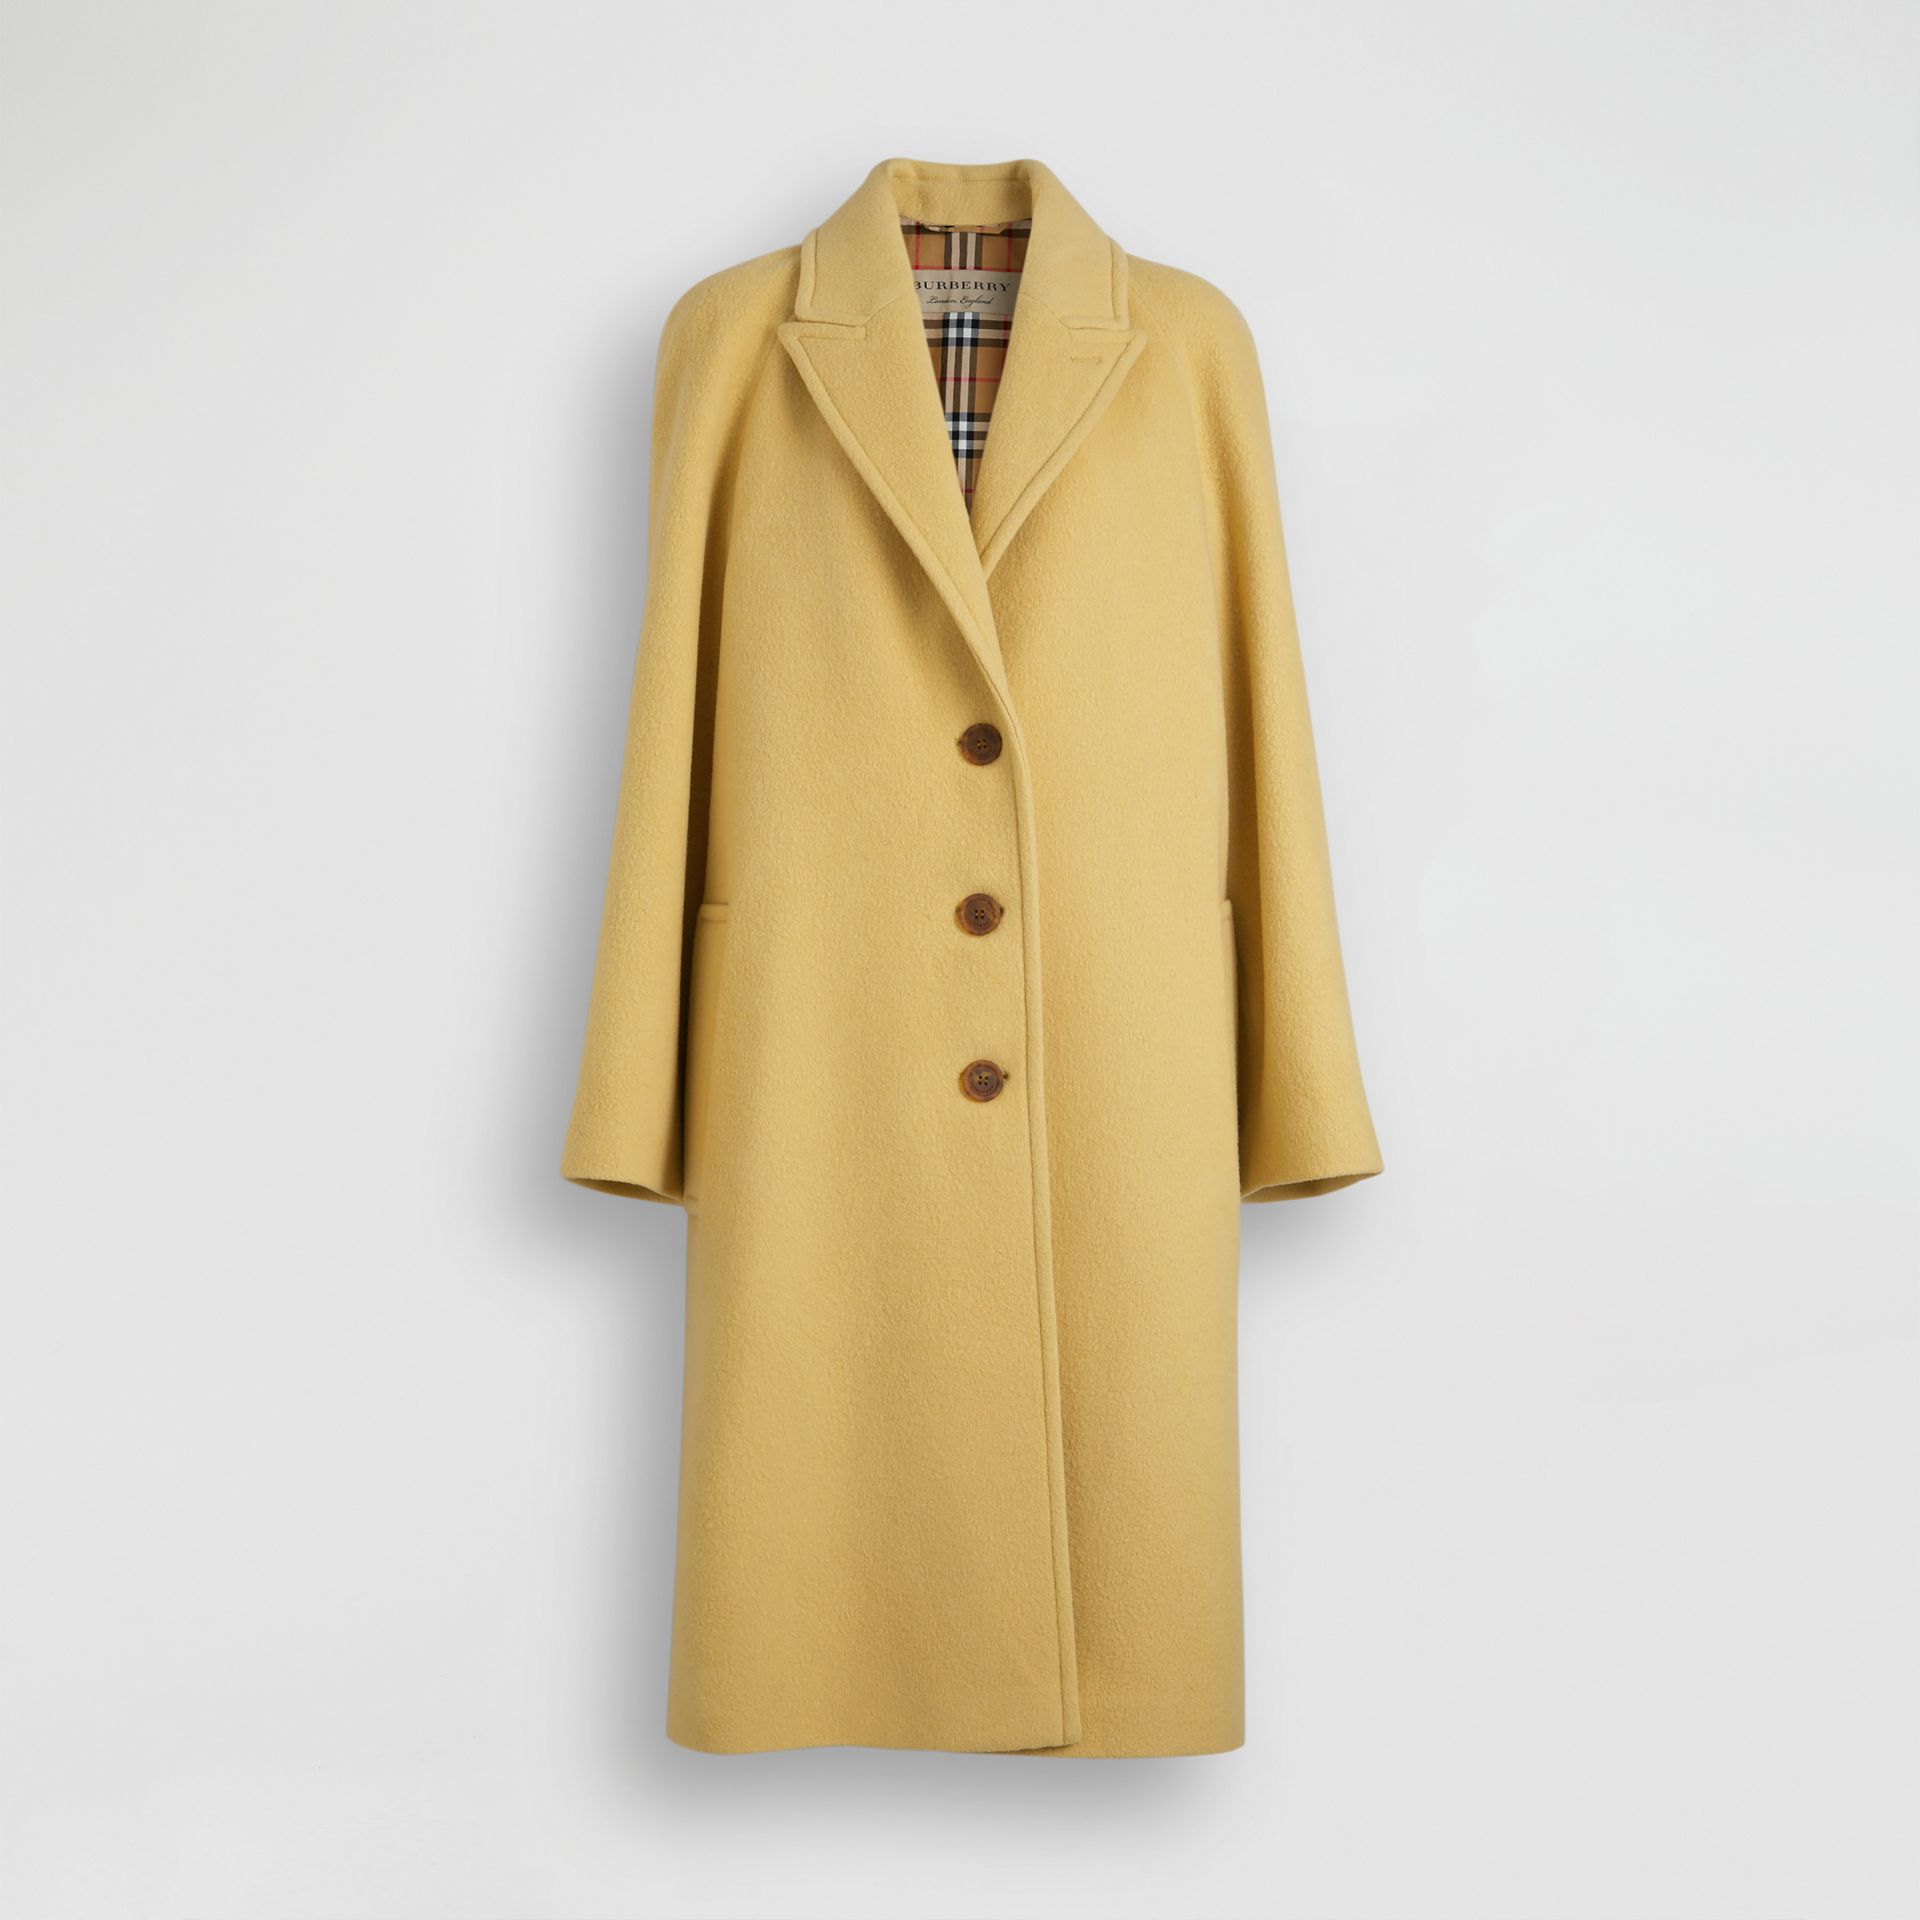 Wool Blend Tailored Coat in Camomile - Women | Burberry - gallery image 2